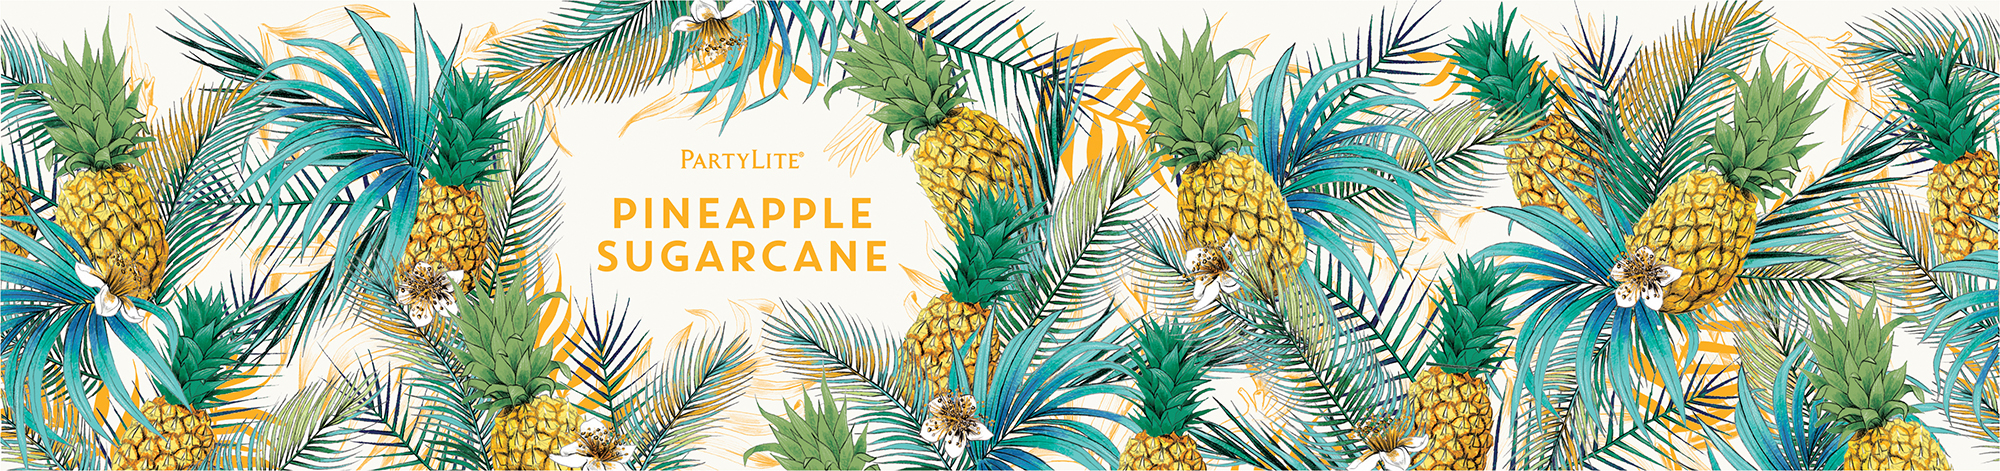 fig.5. Pineapple Sugarcane candle wrap pattern illustration